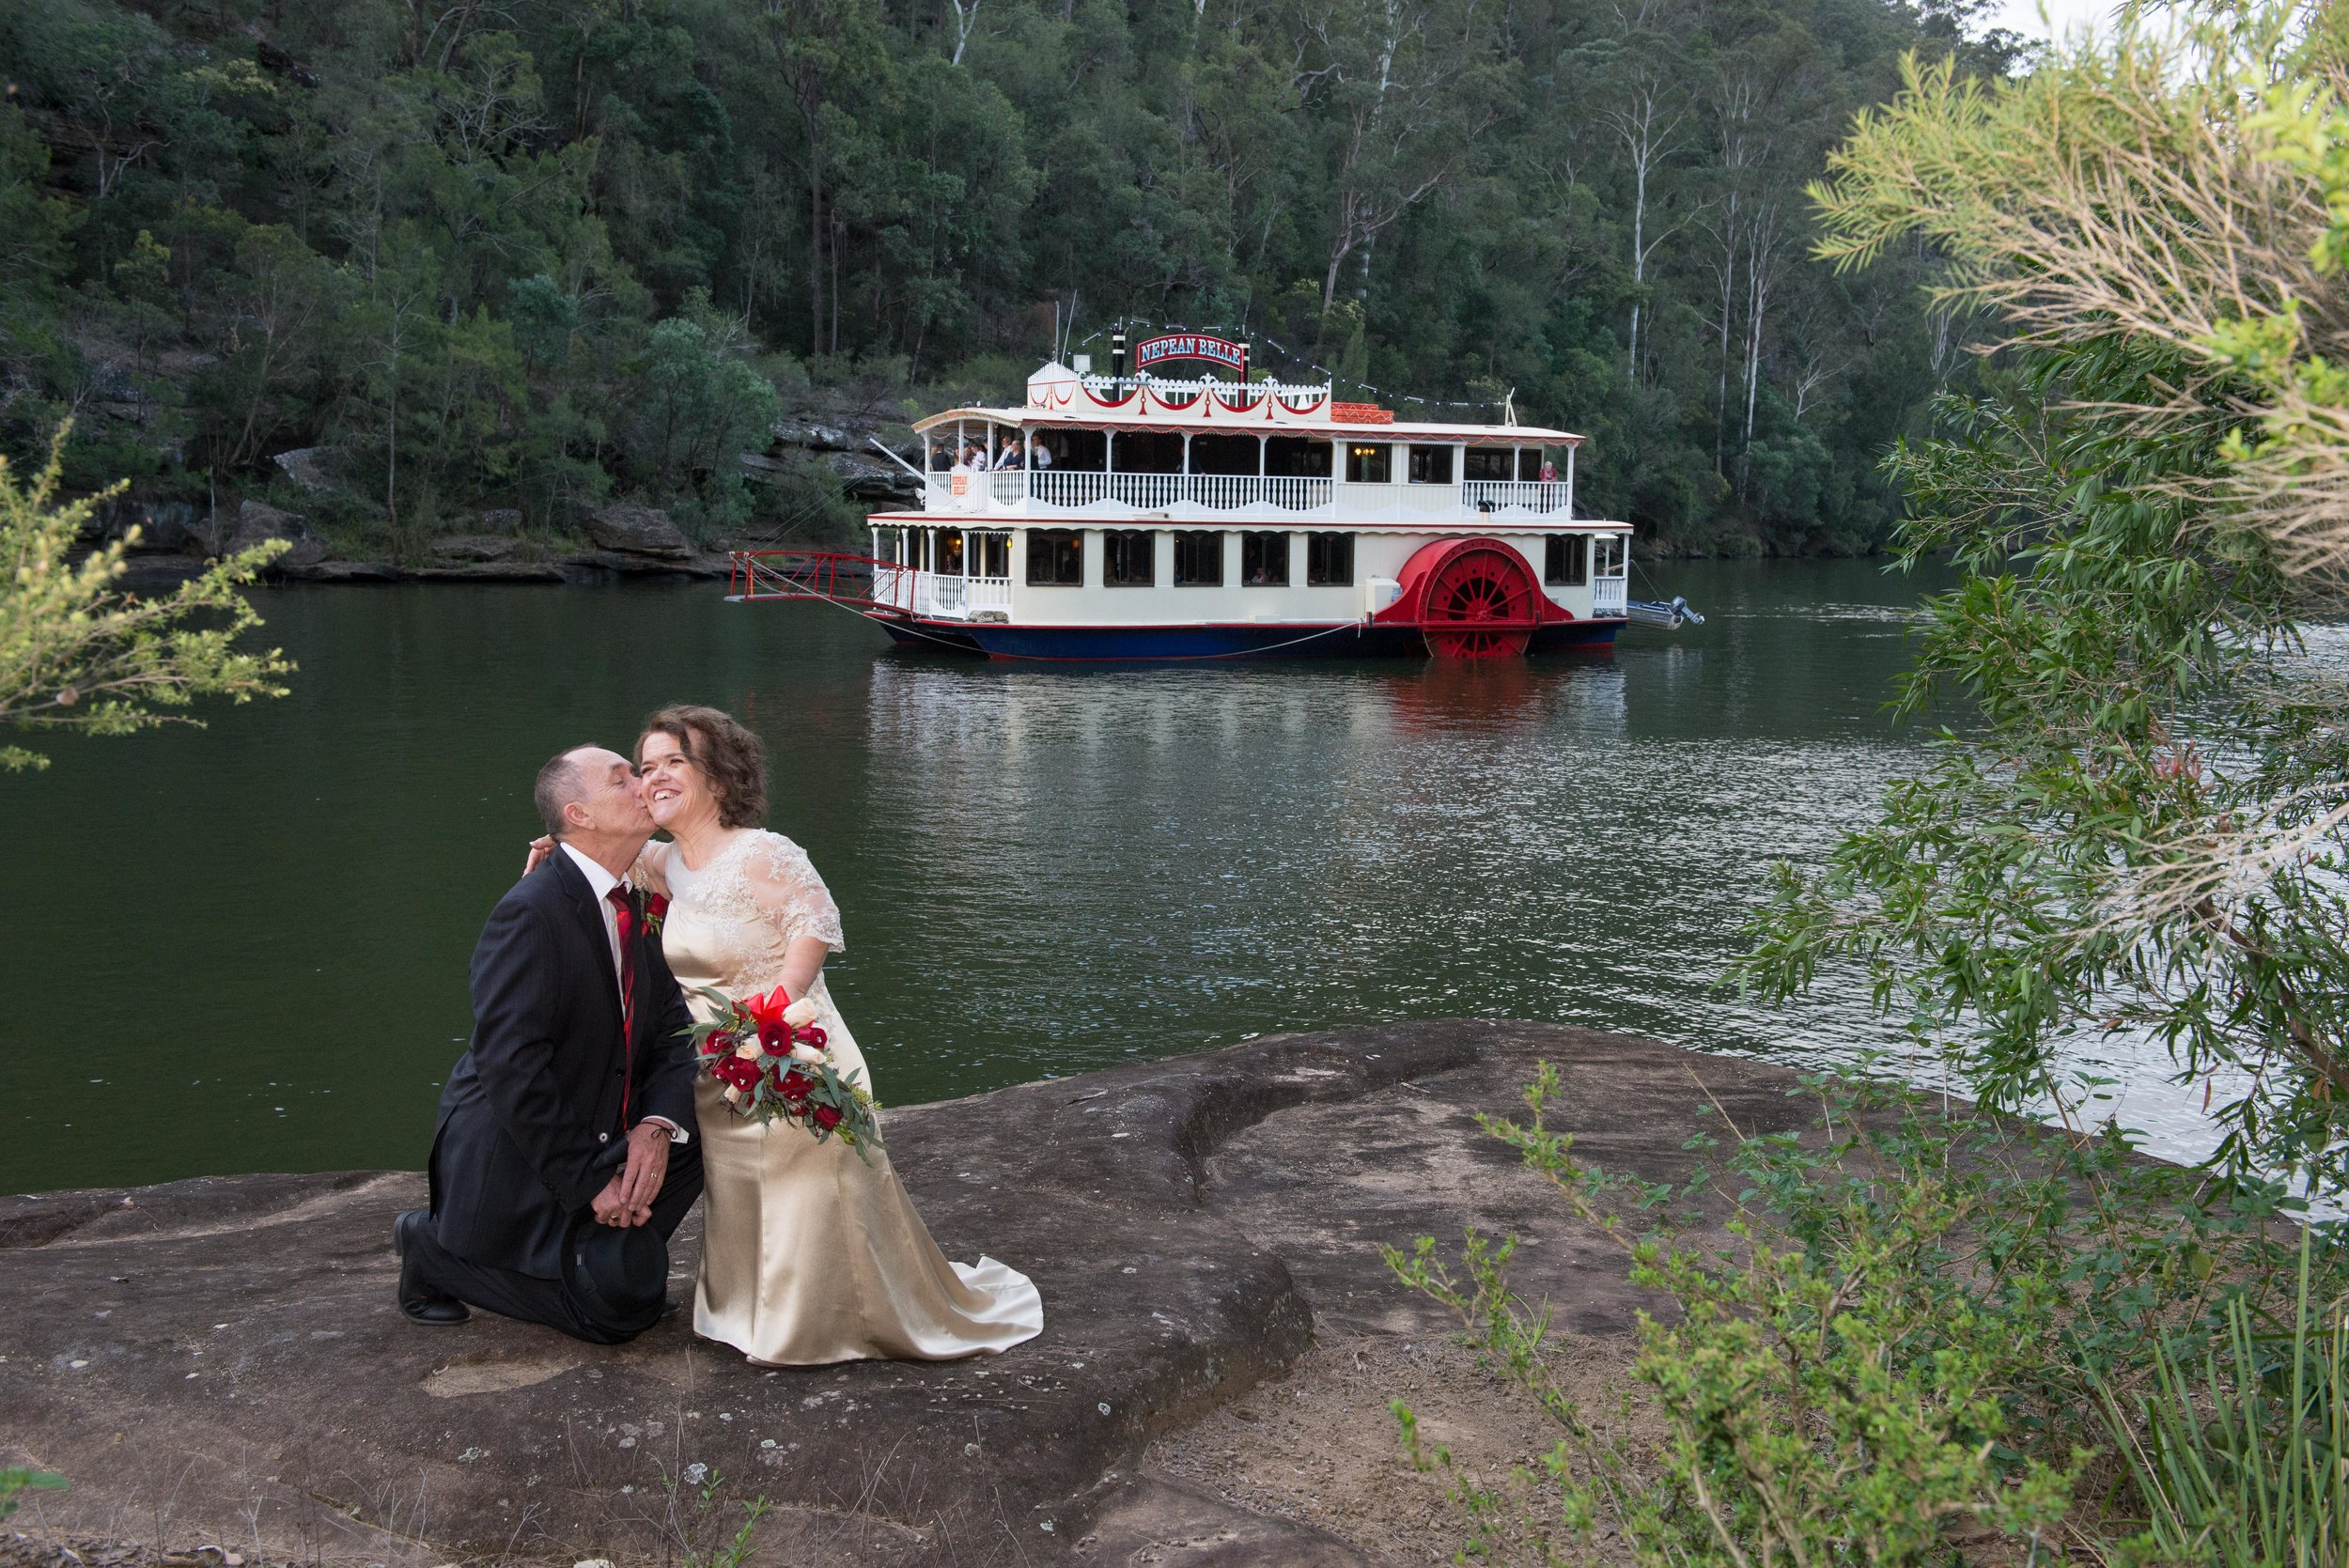 Belle wedding gorge rock offshore bride groom river background.jpg